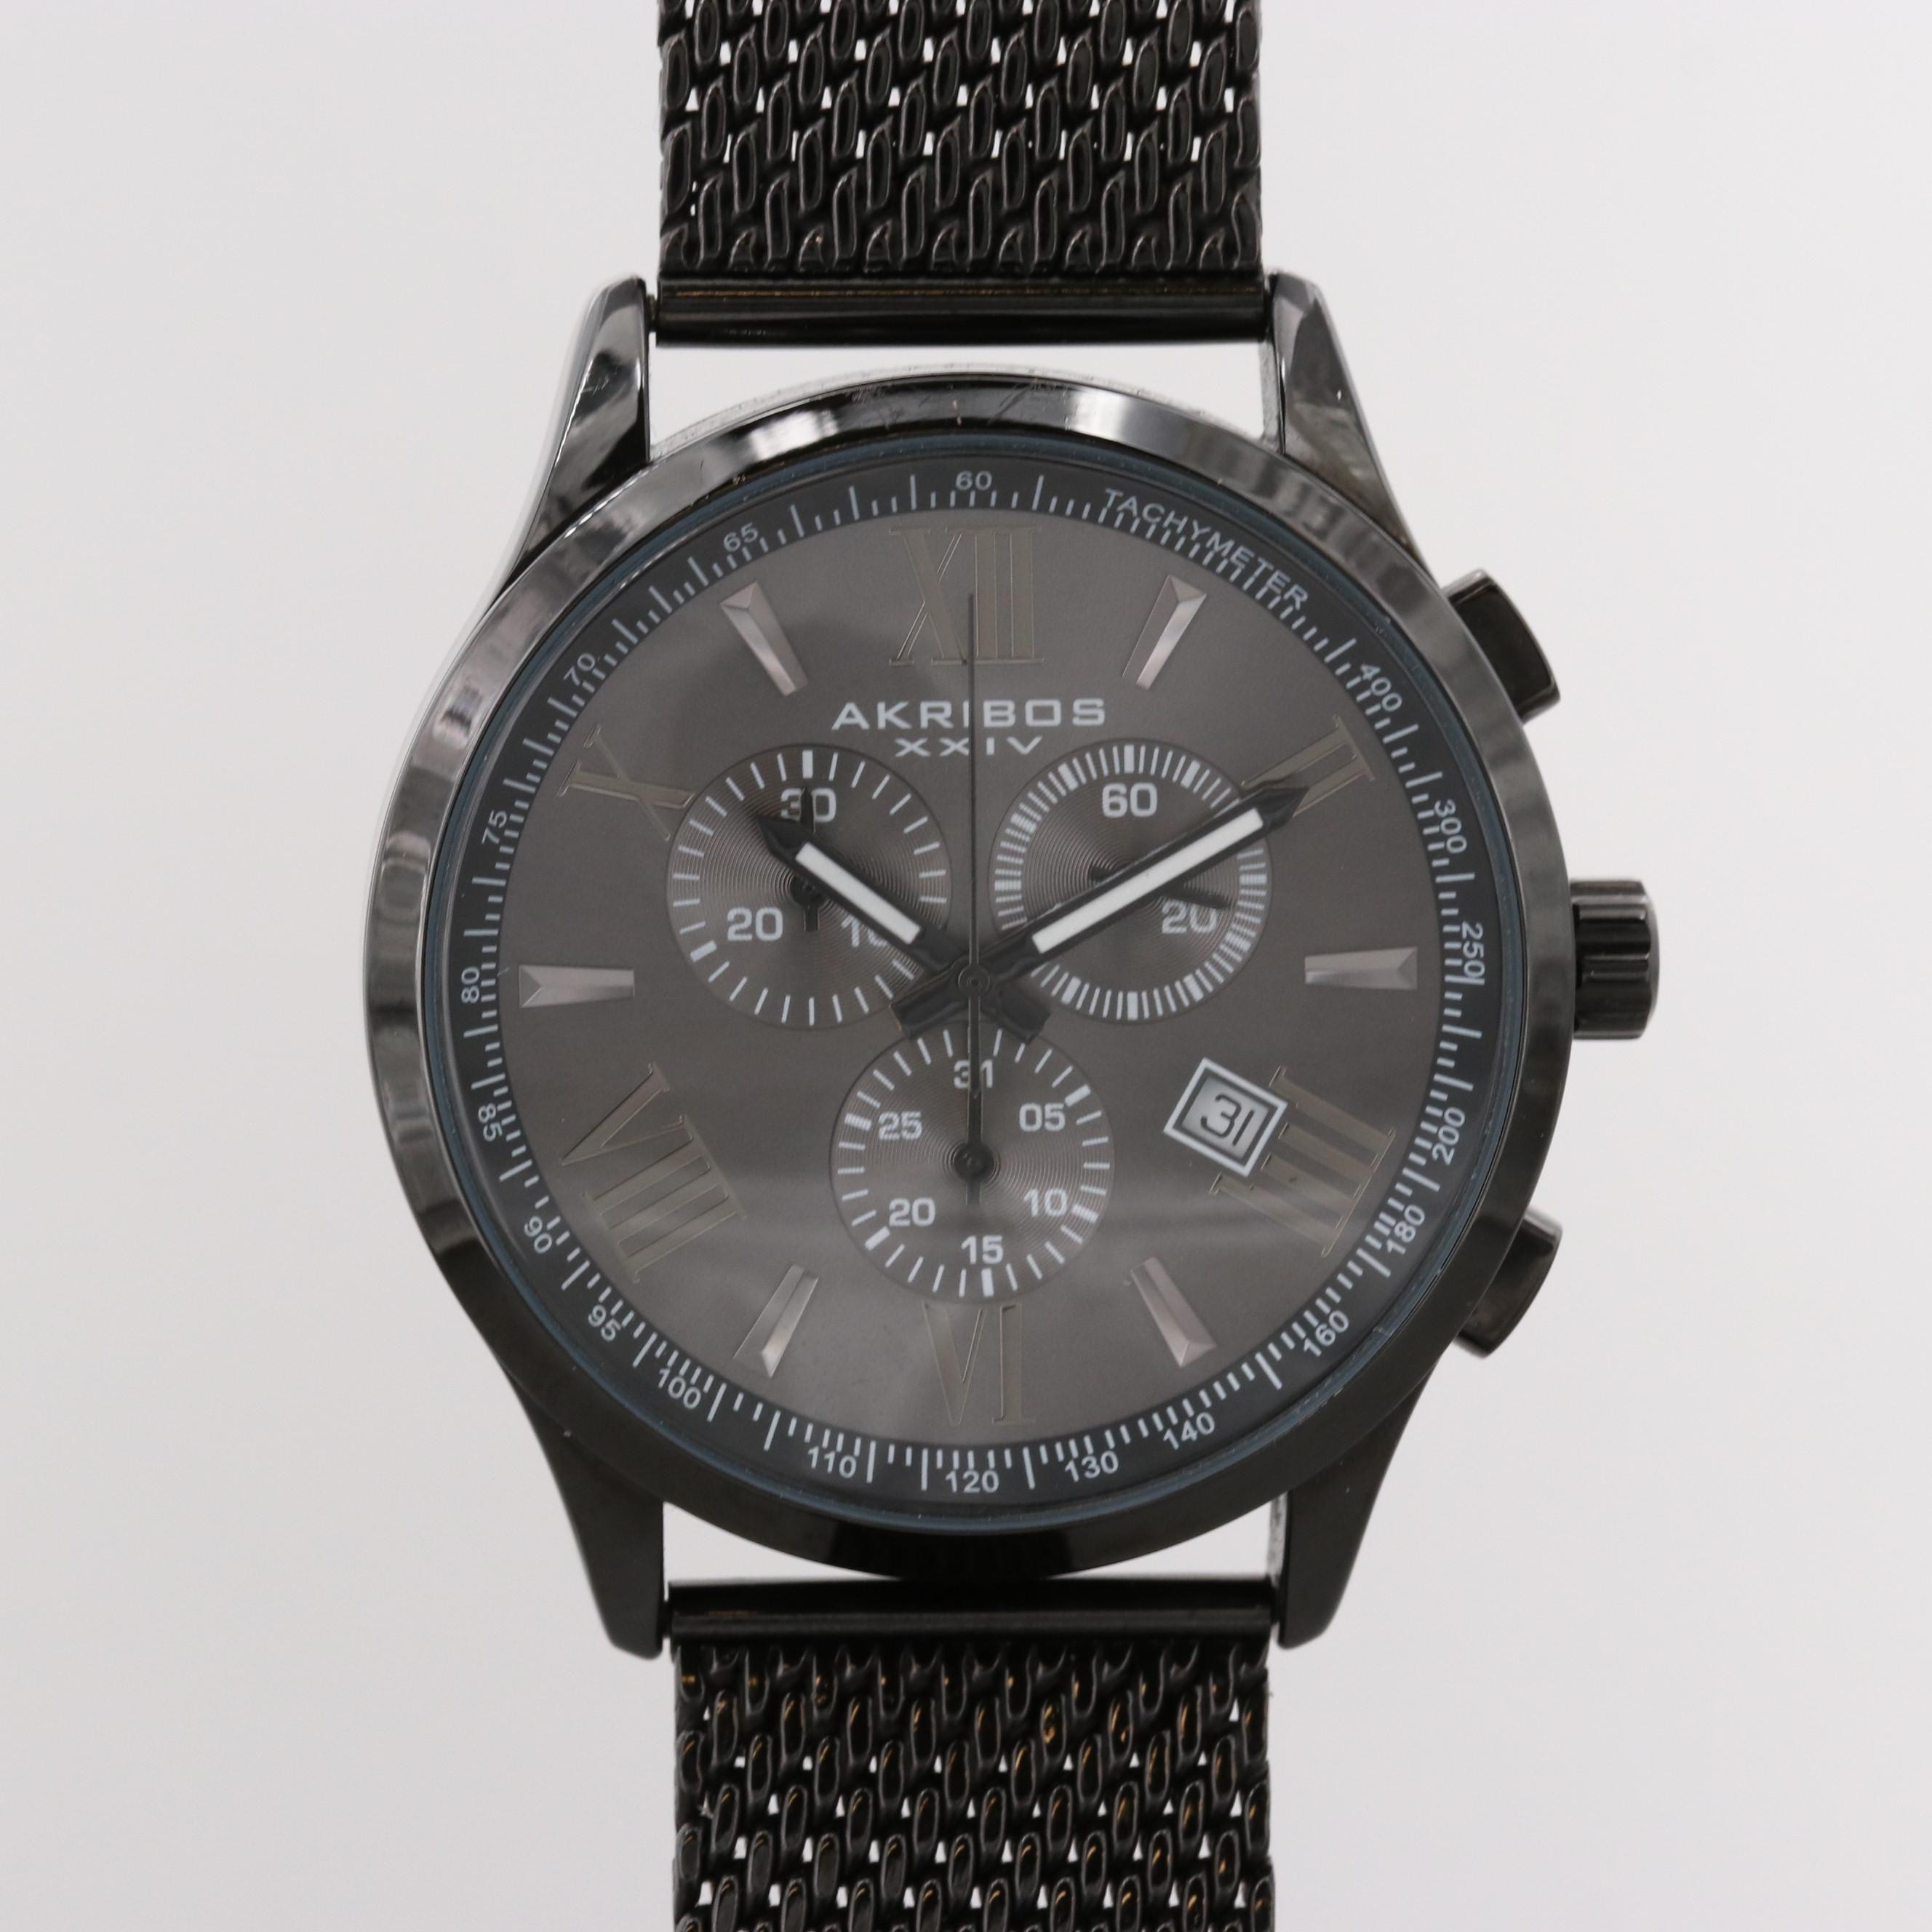 Akribos Black PVD Stainless Steel Quartz Chronograph Wristwatch